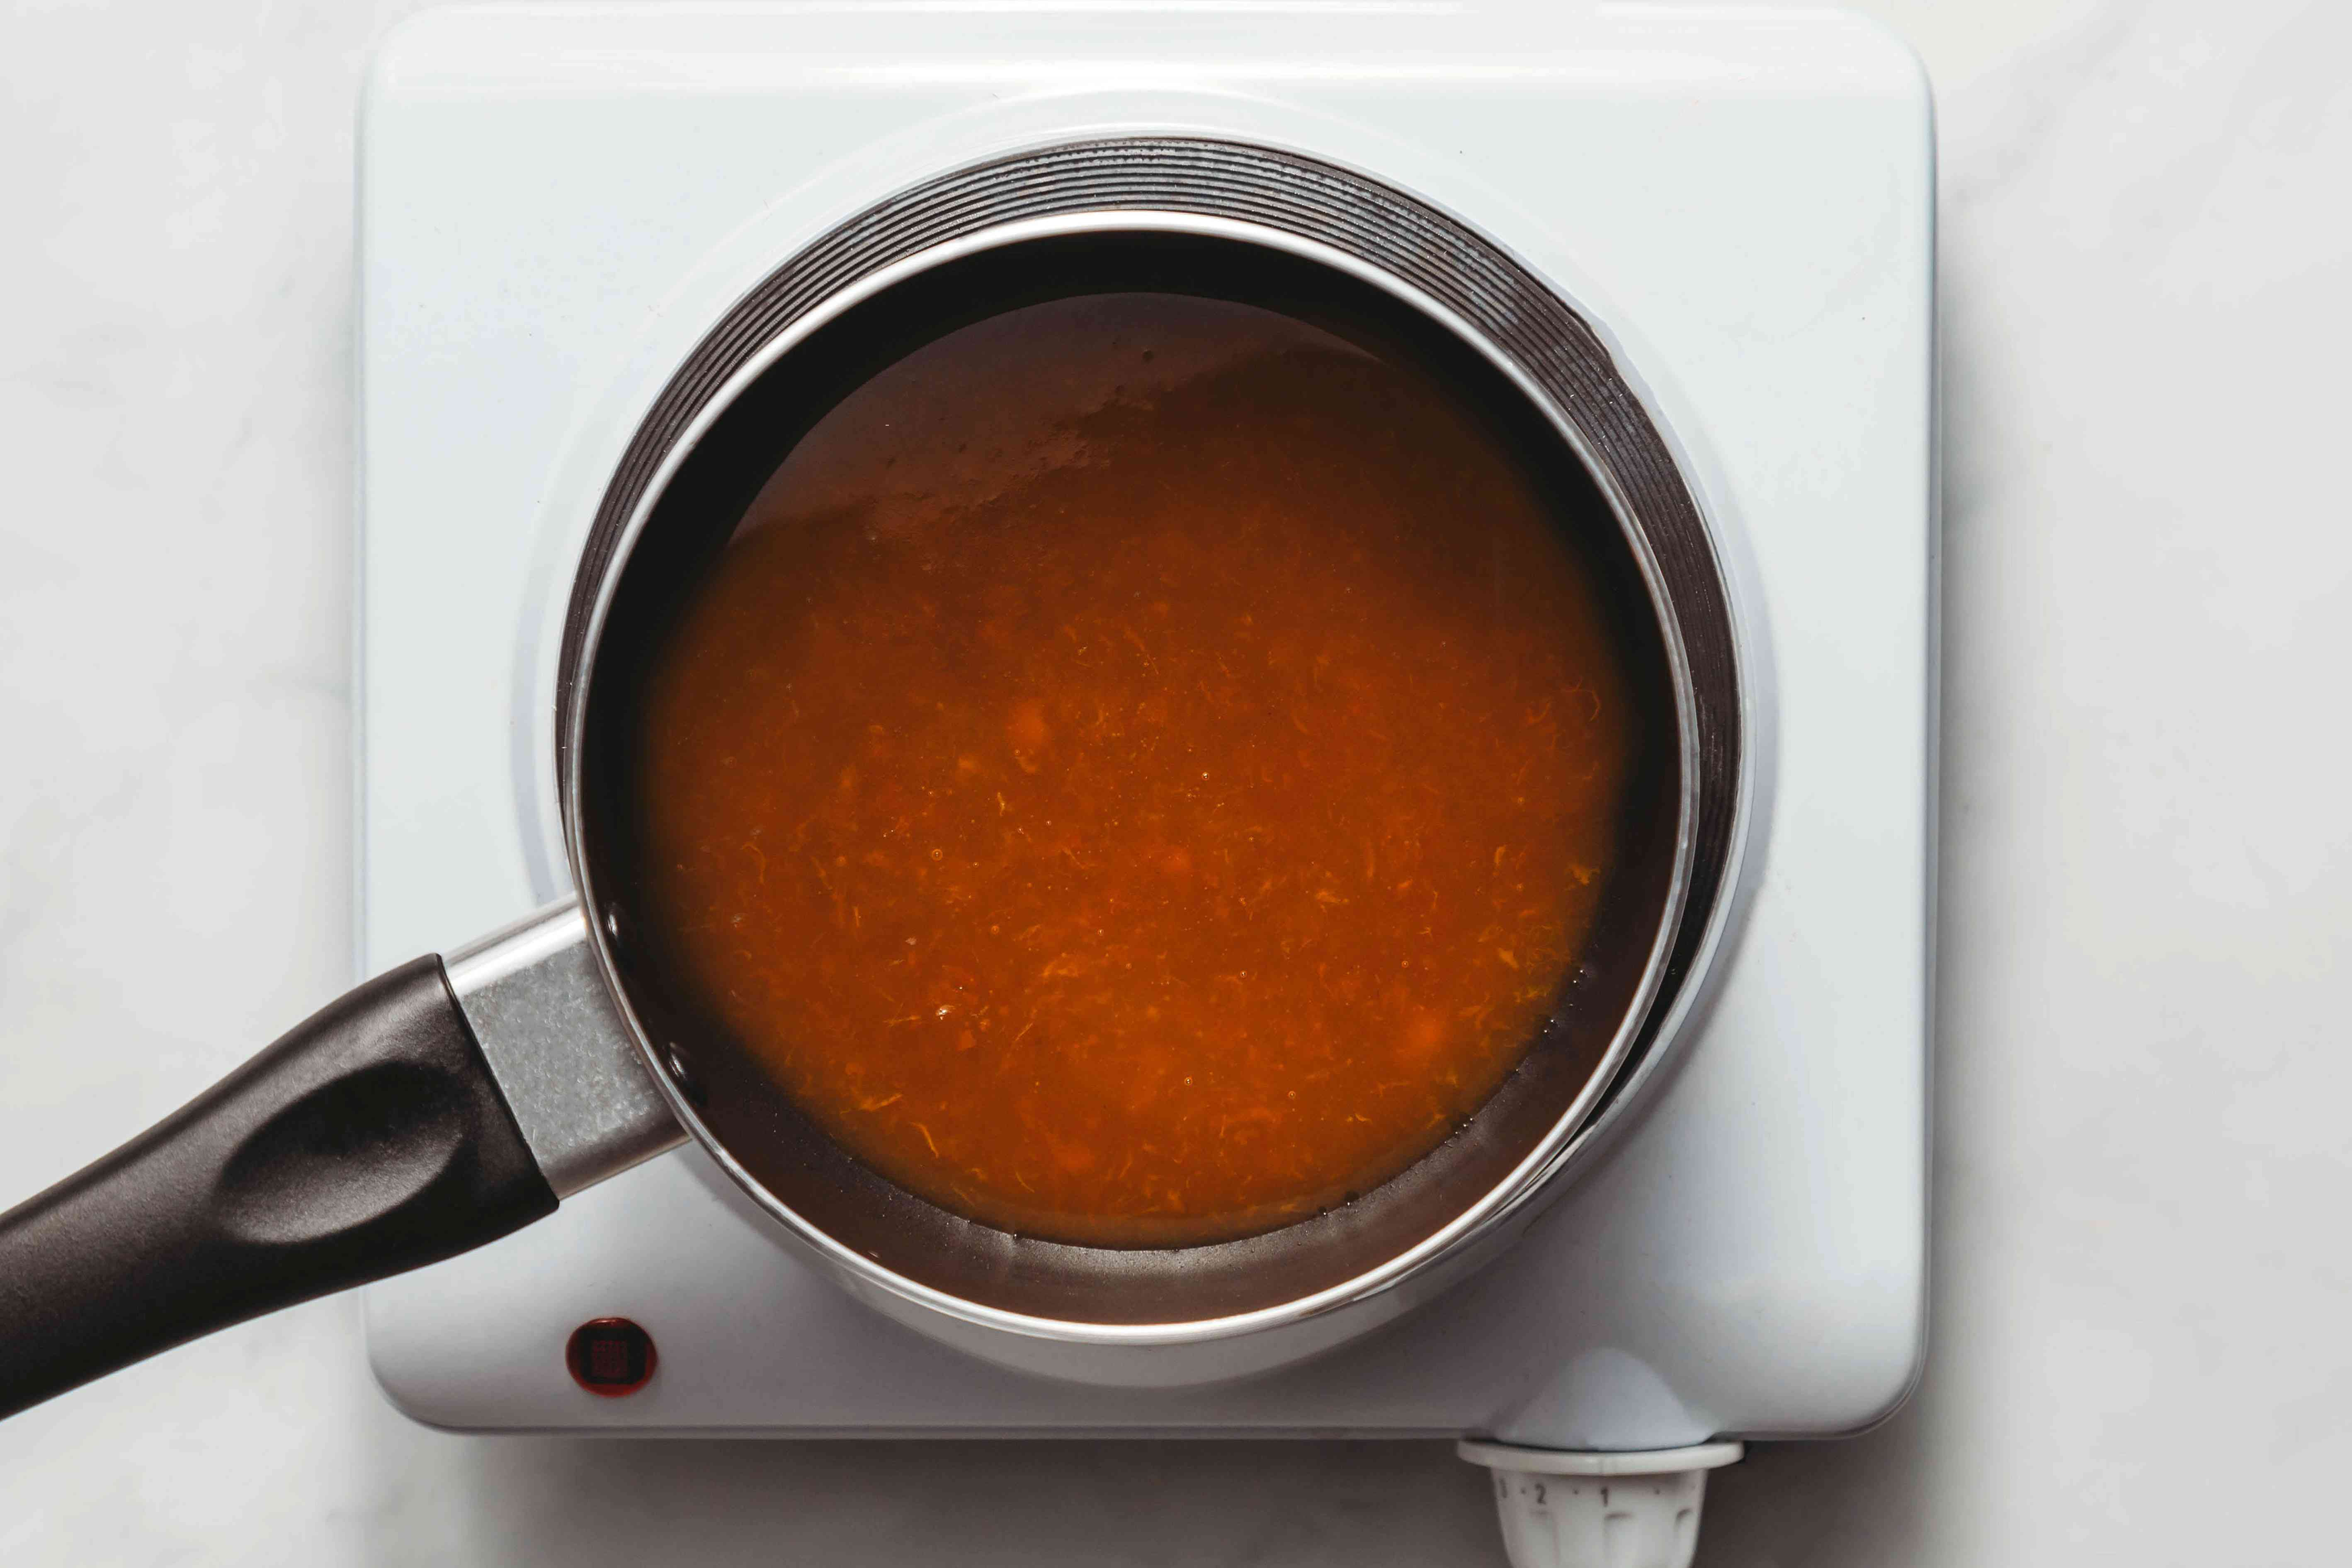 heat the apricot jam in a small saucepan along with about a tablespoon of water